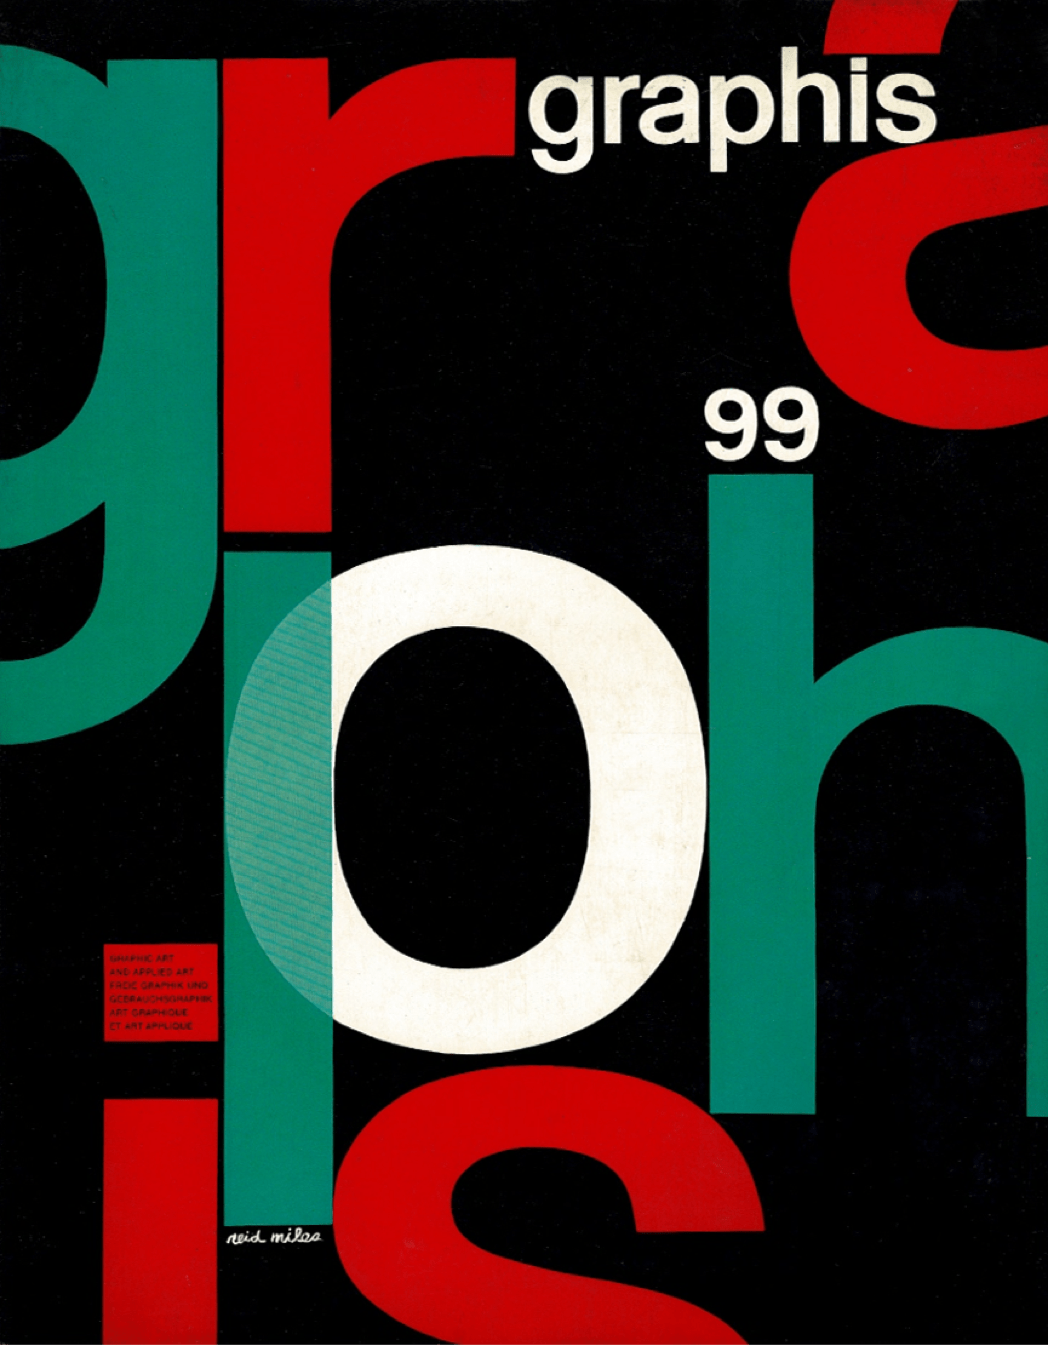 A magazine cover of various large letters set on a page in red, green, and white on a black background.